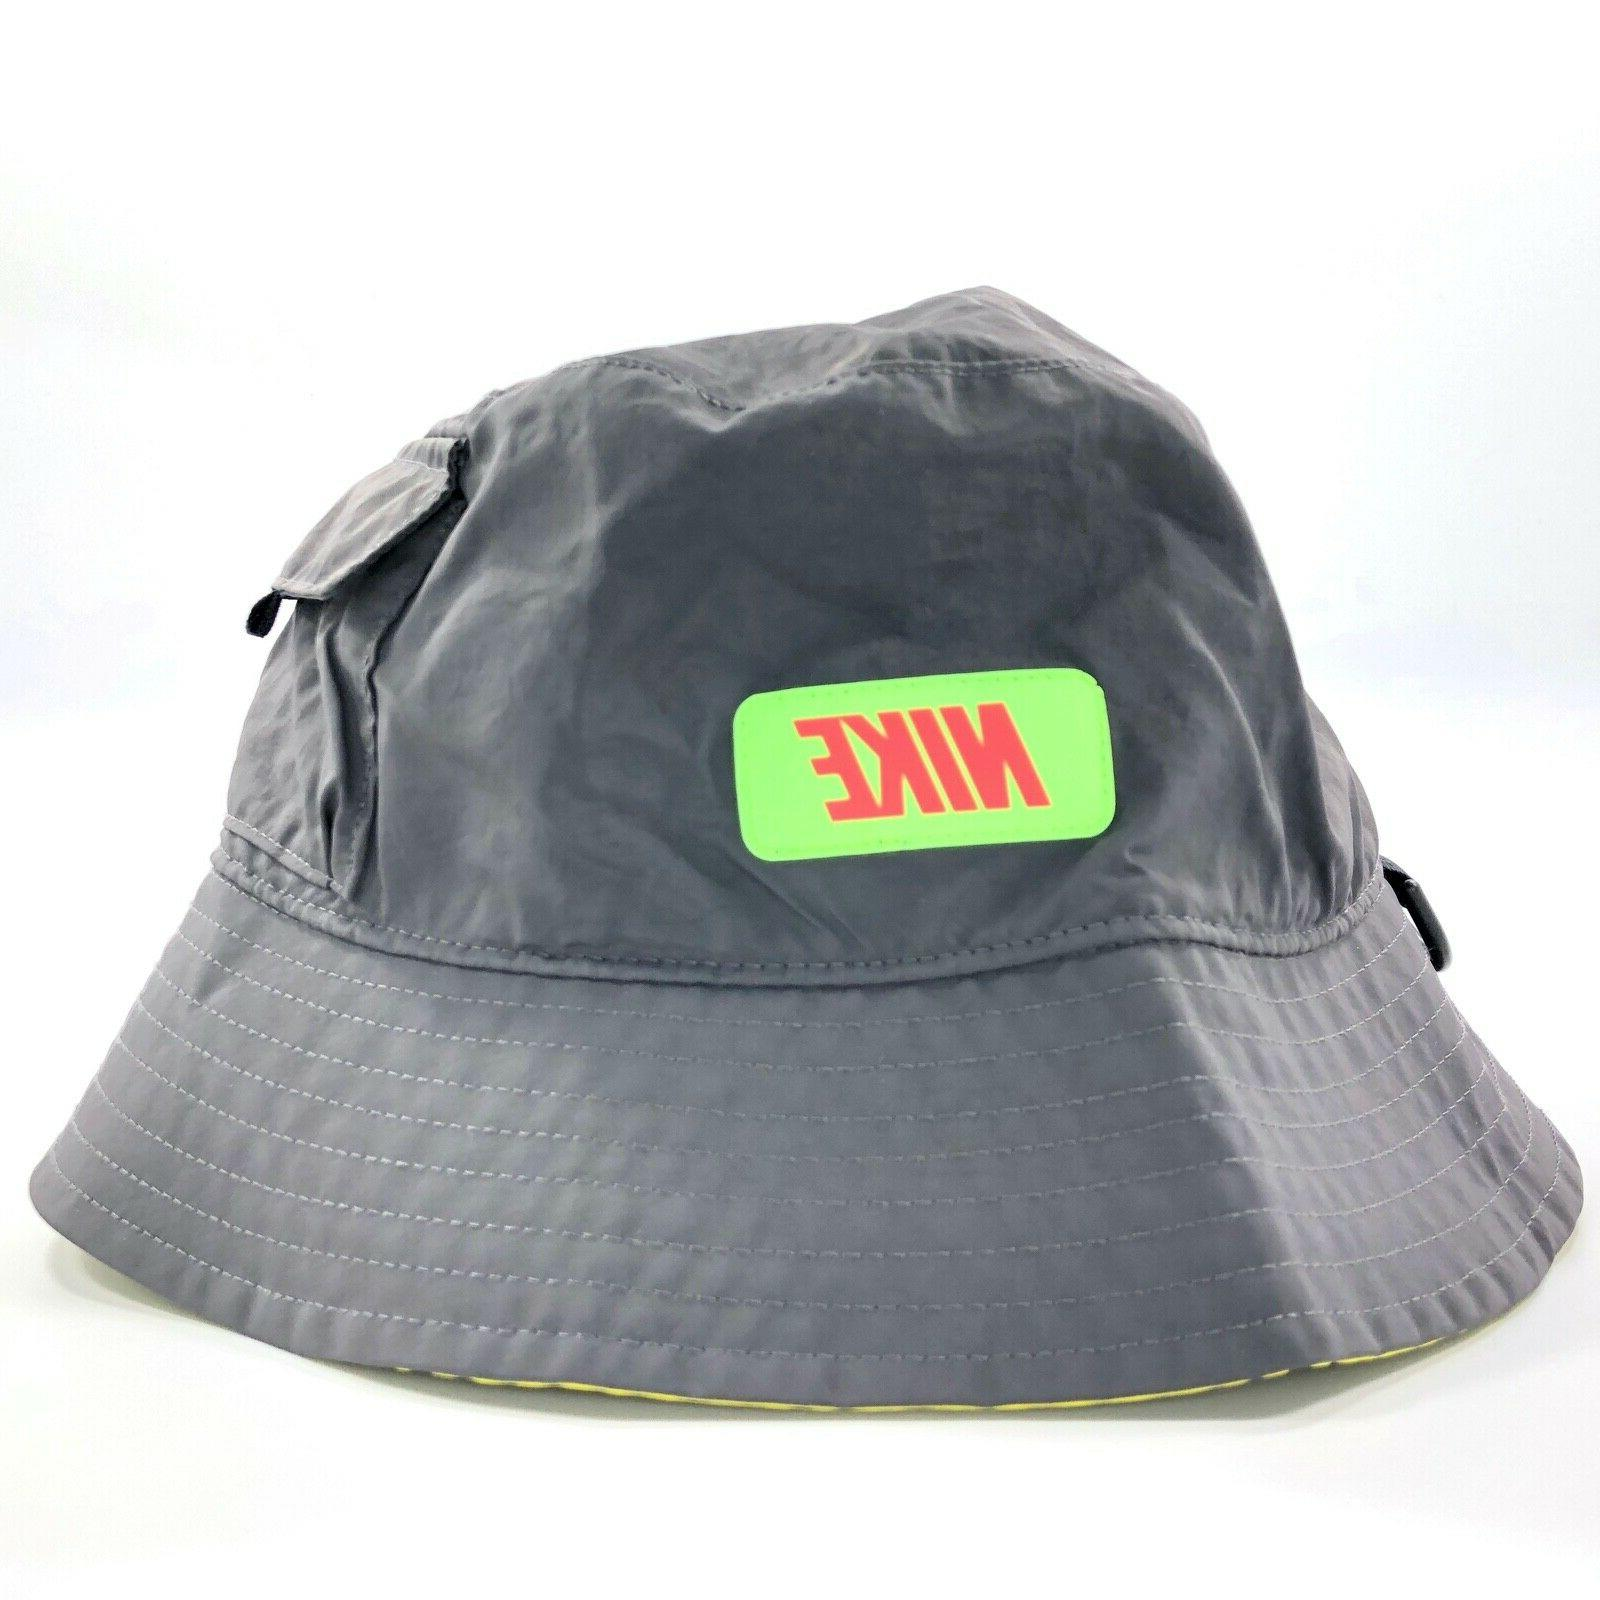 gce bucket hat cap thunder grey lime